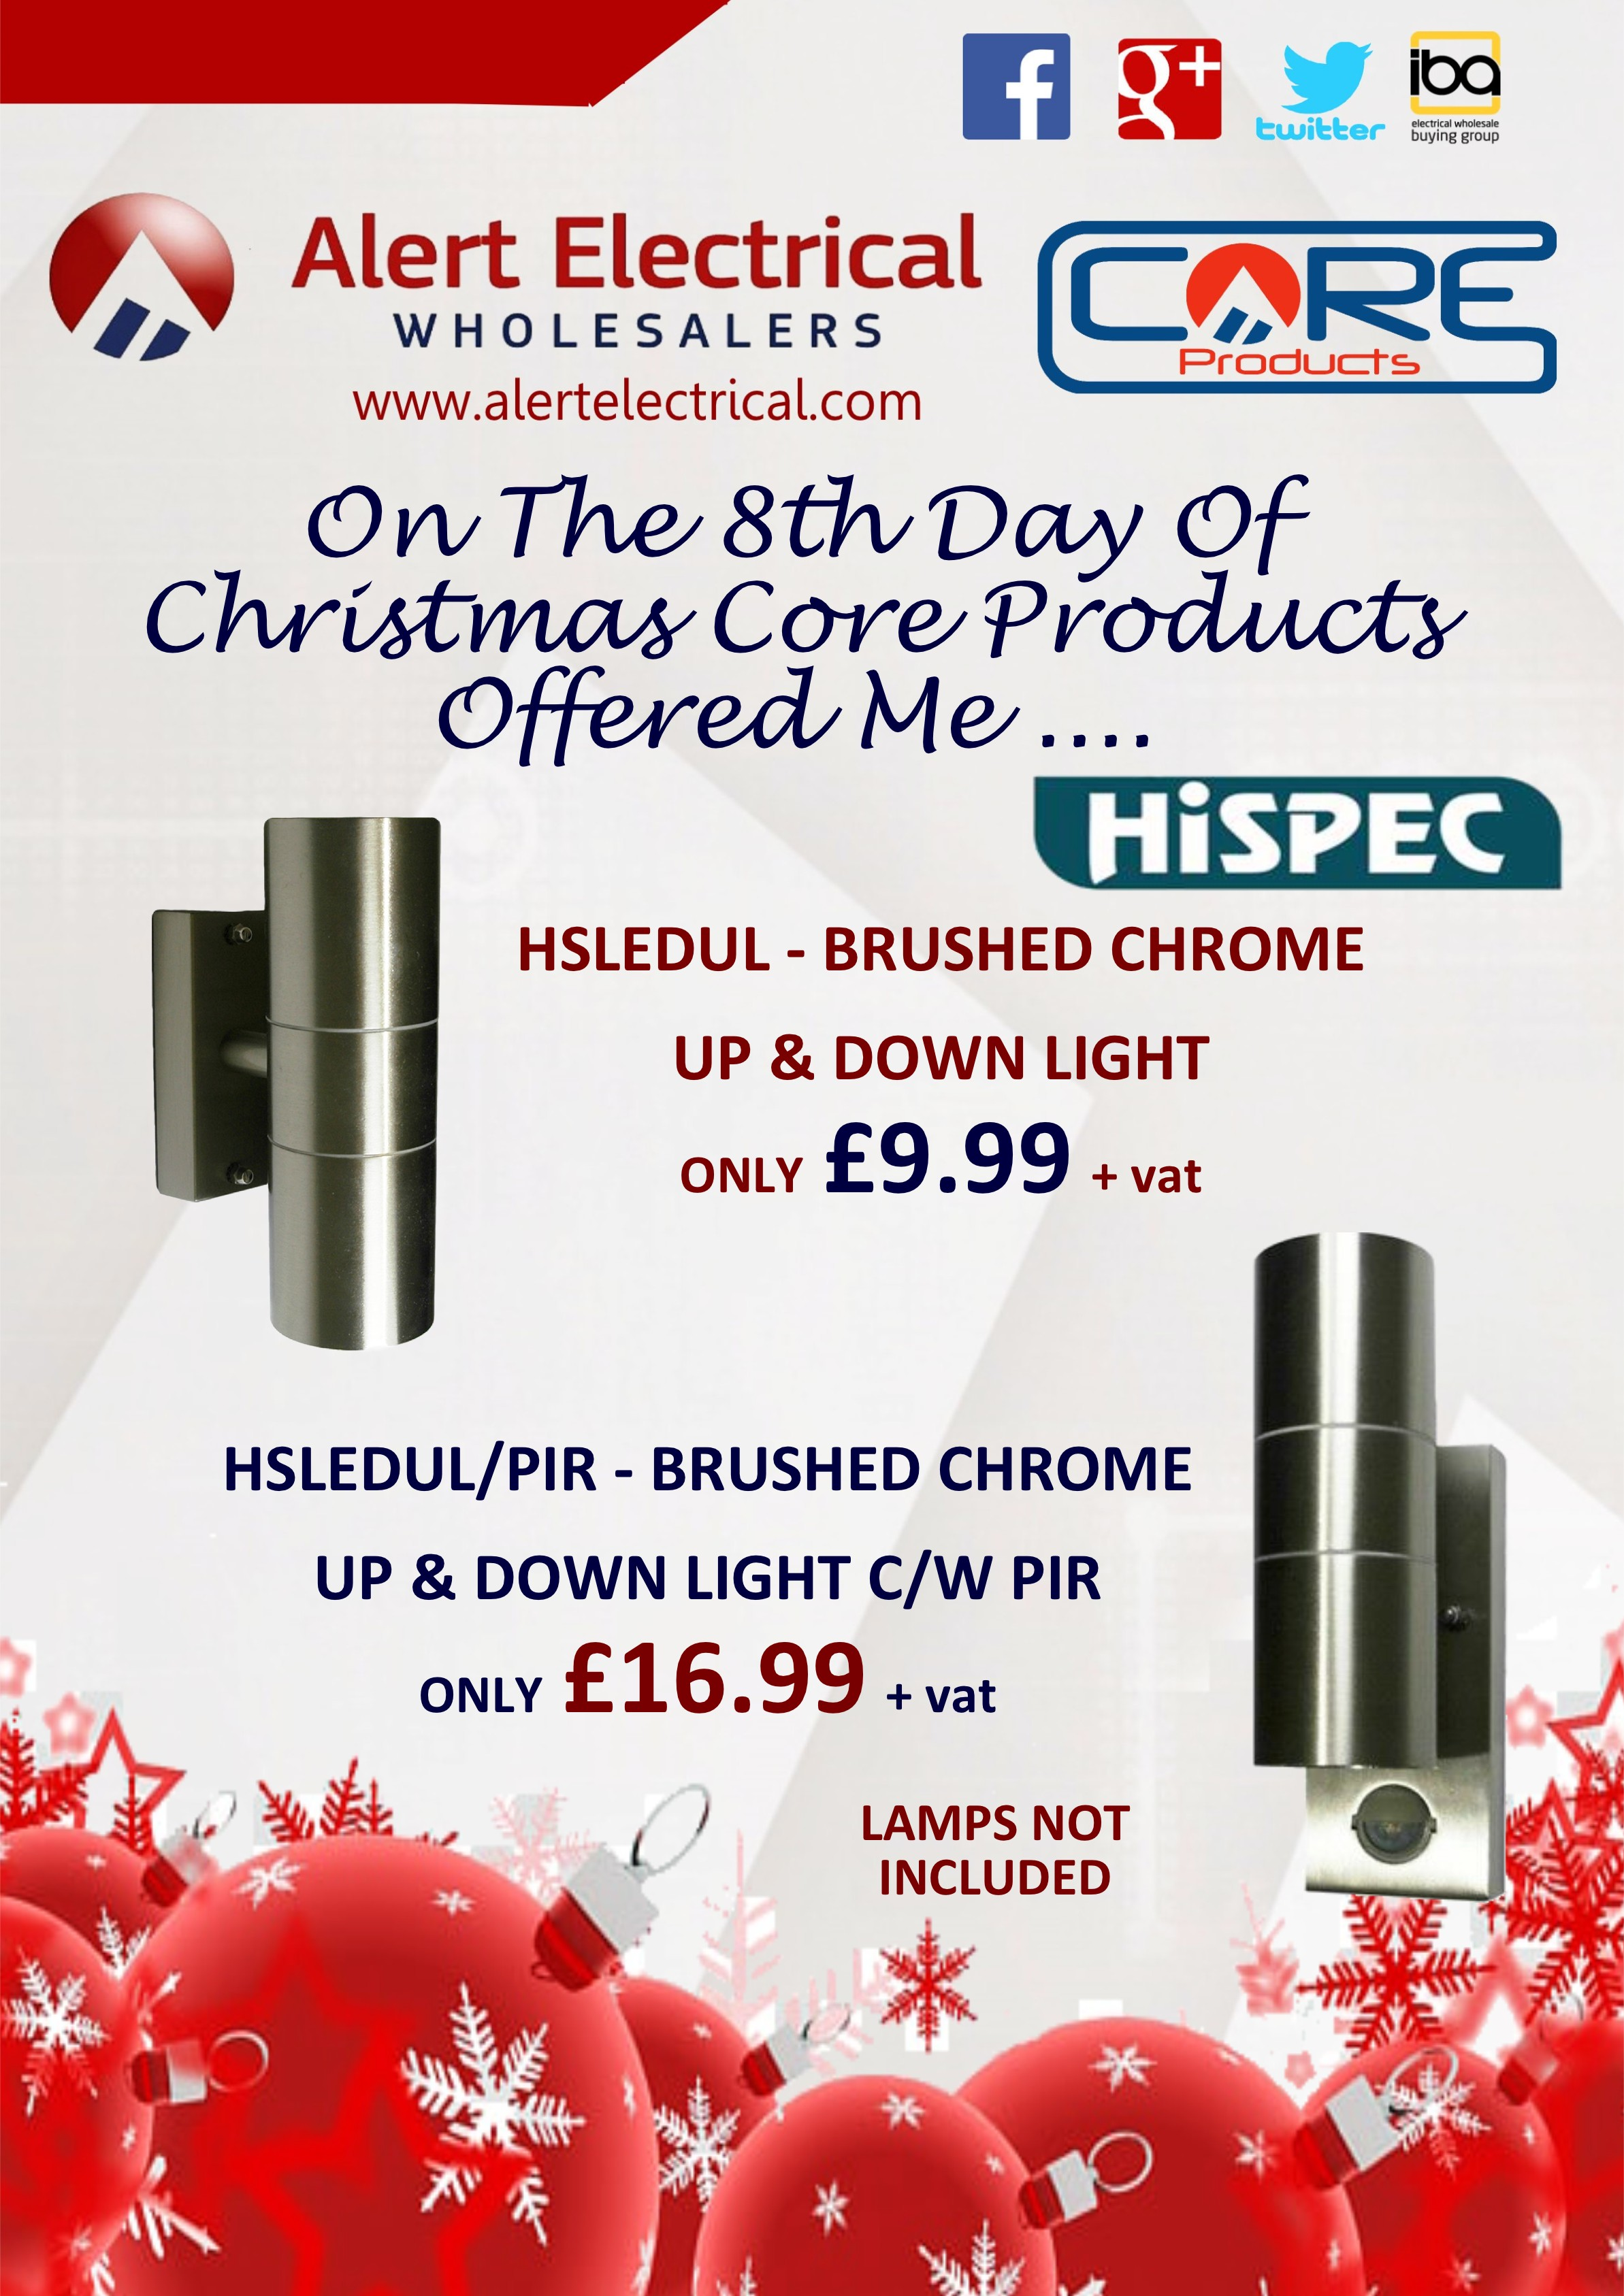 Alert Electrical Wholesalers 12 Days of Christmas. Day 8 HiSpec Up & Down Outdoor Lights